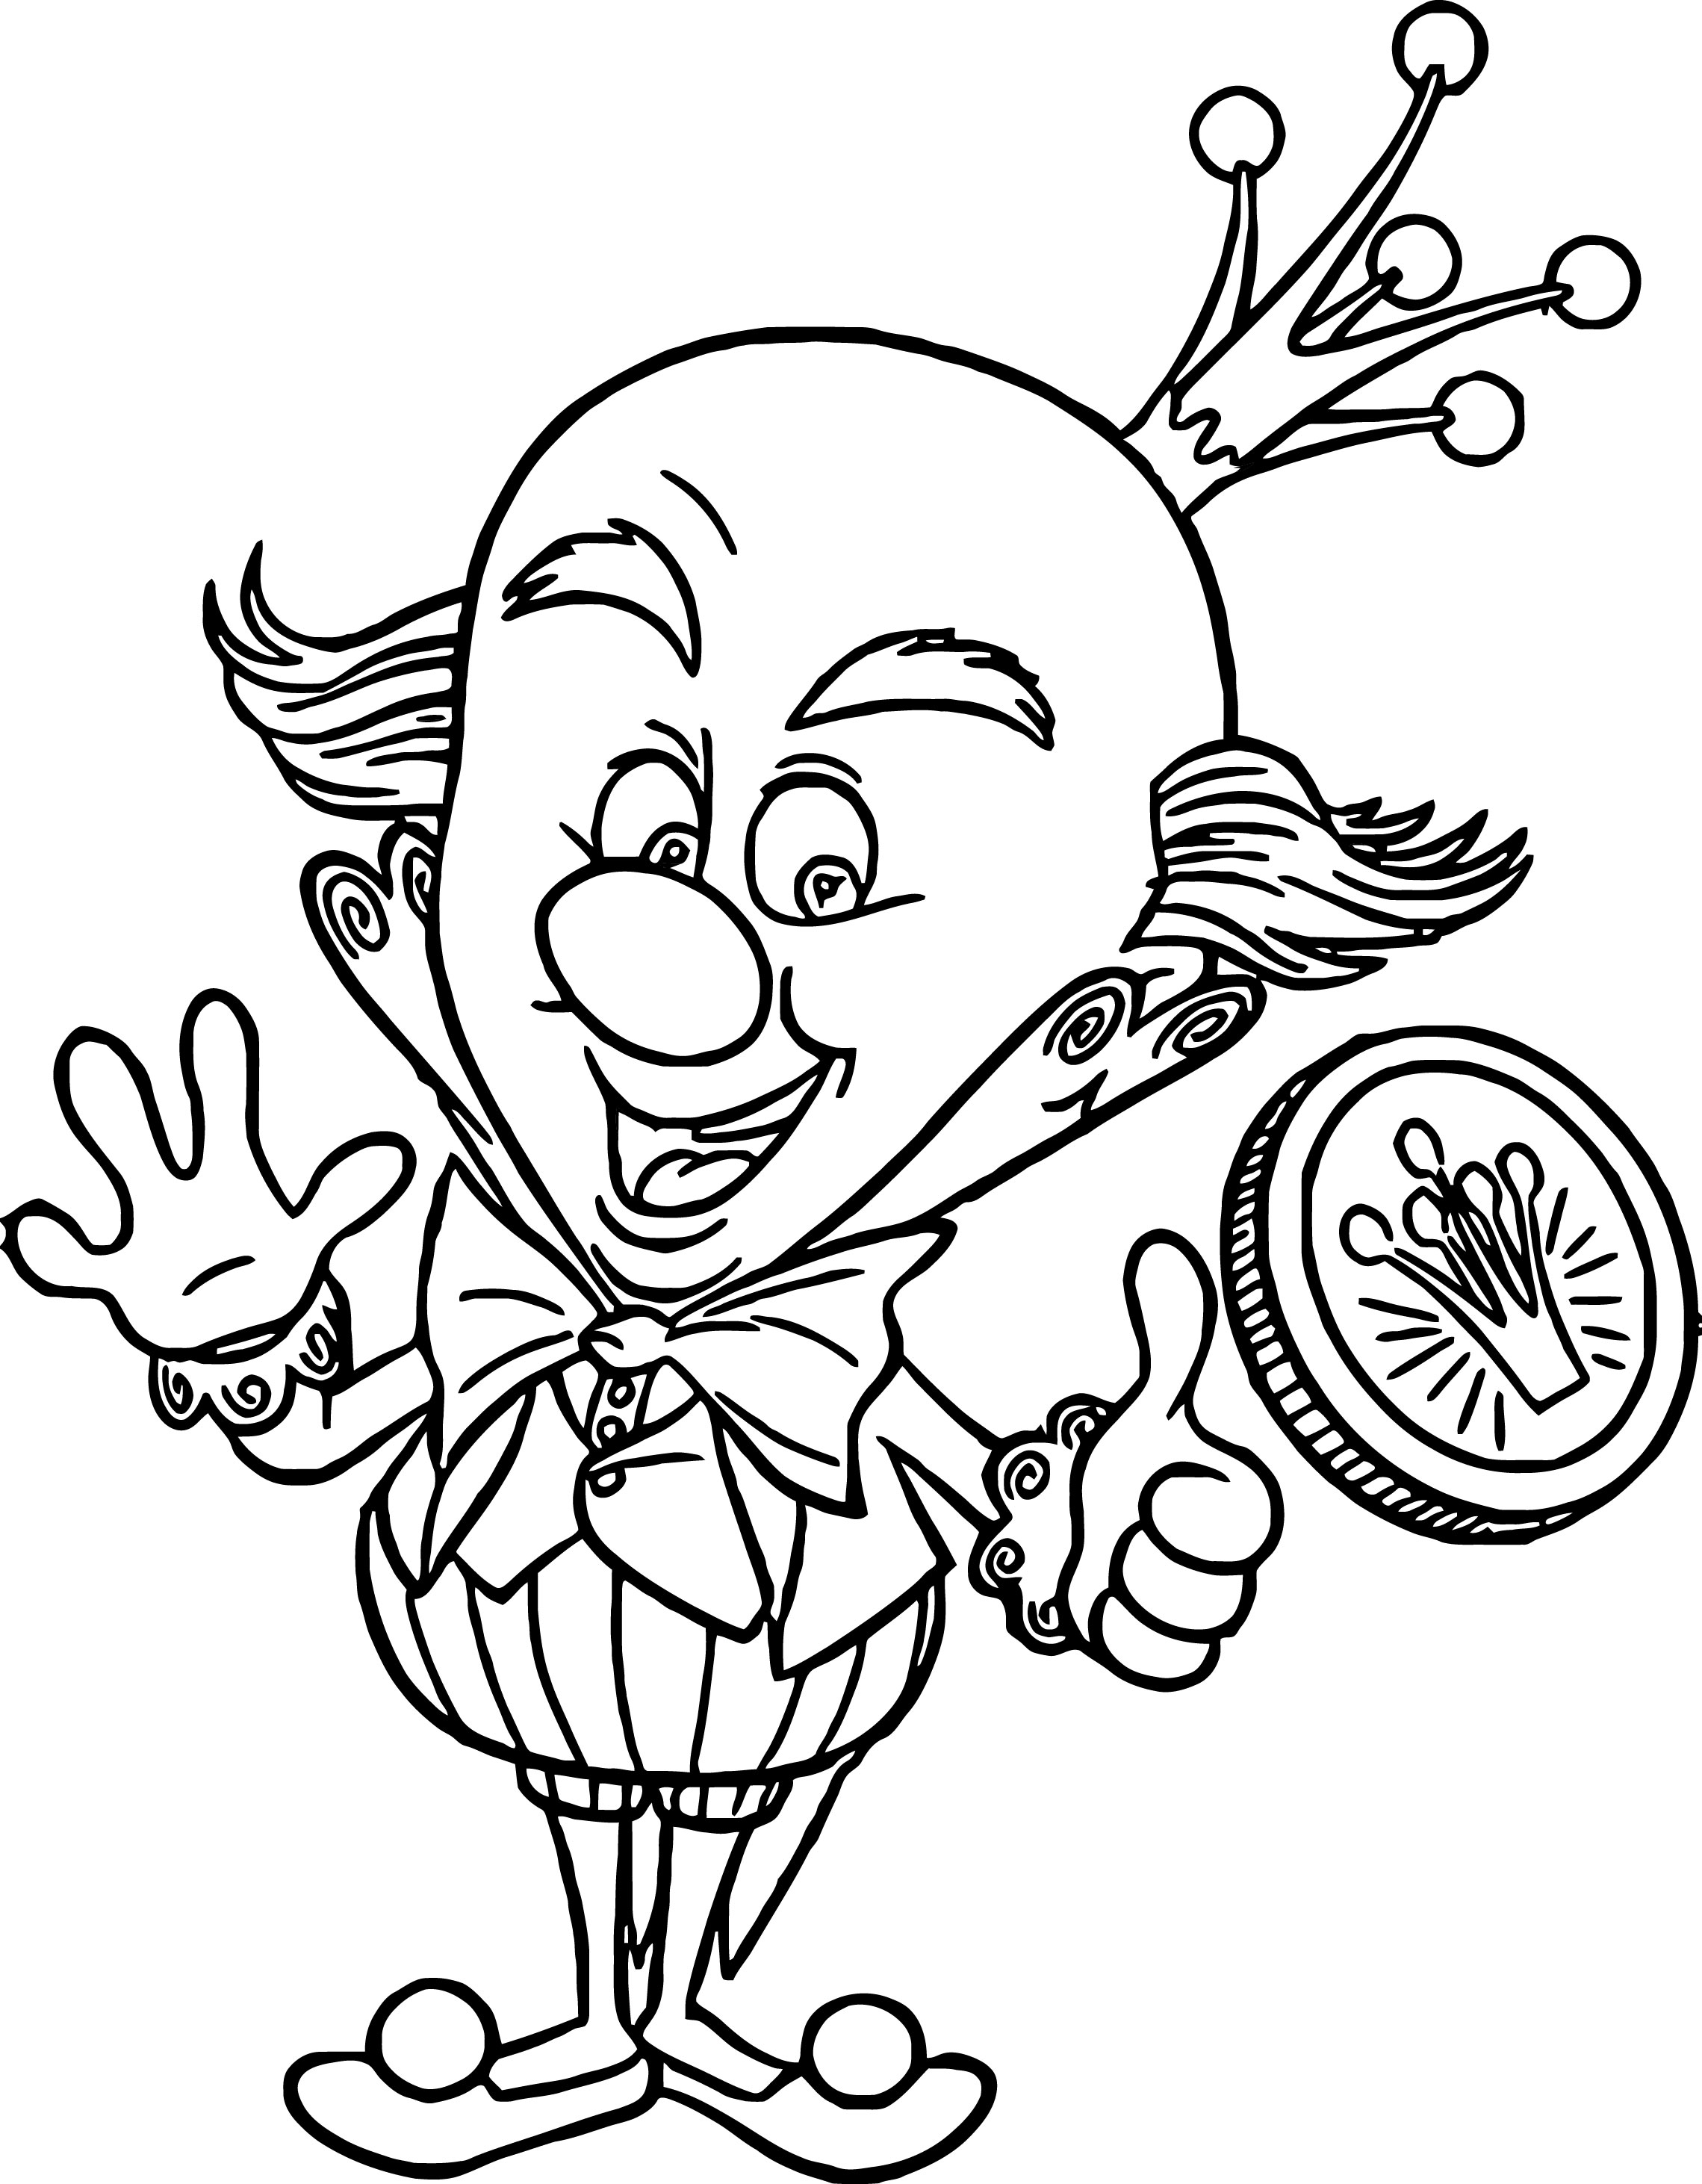 Coloring pages candy - Wreck It Ralph King Candy Medal Coloring Page